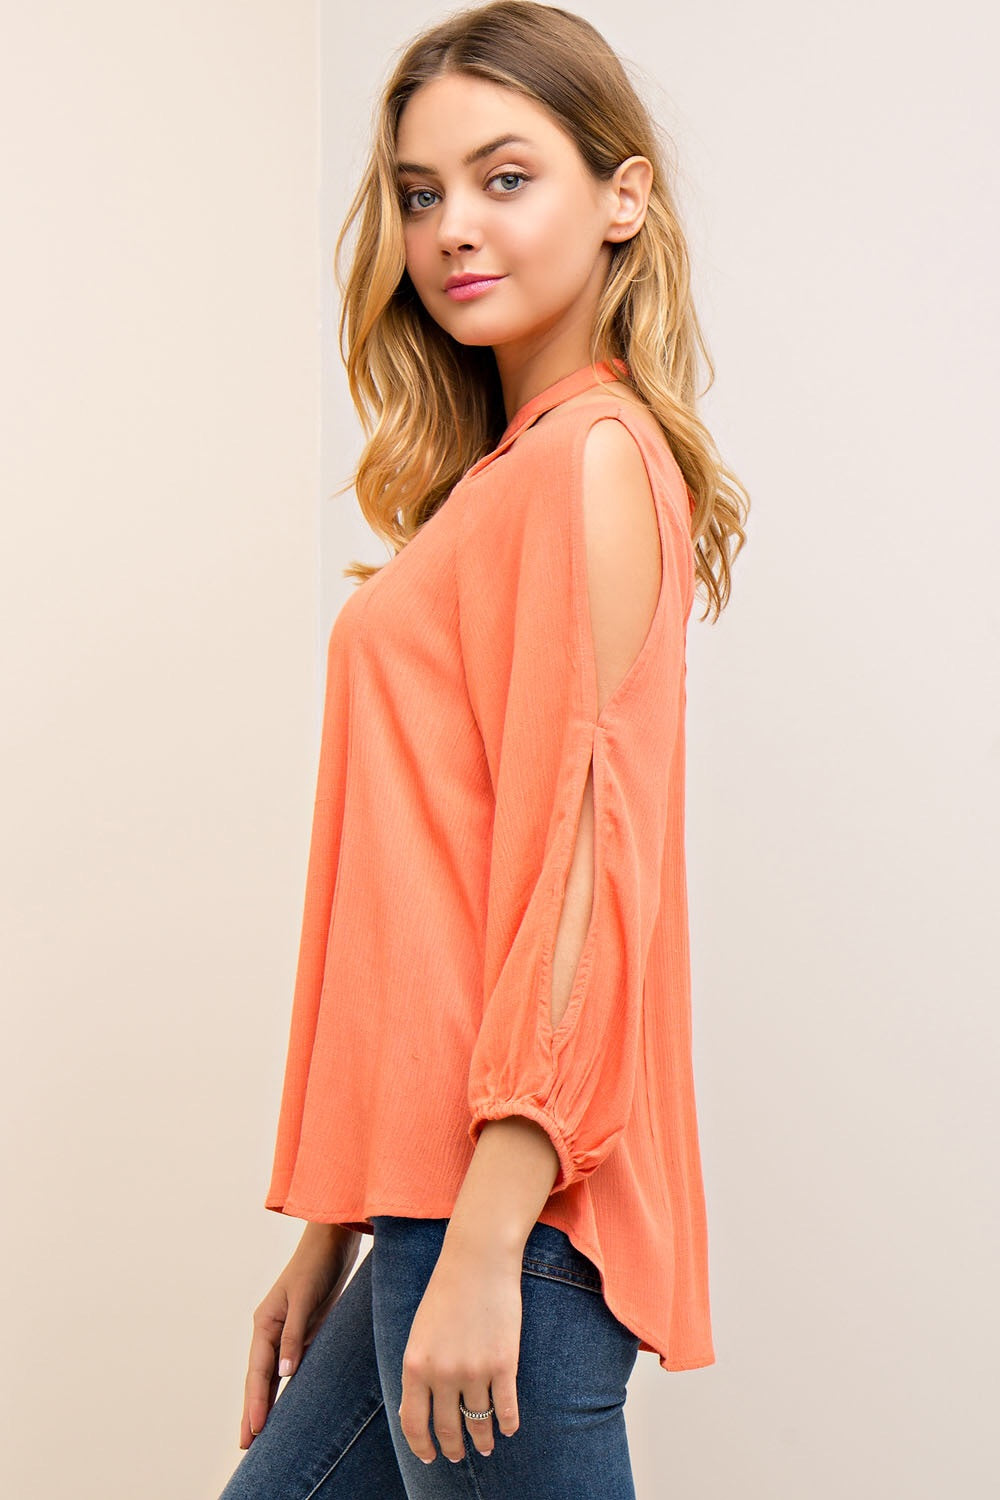 Sunkist Coral Top